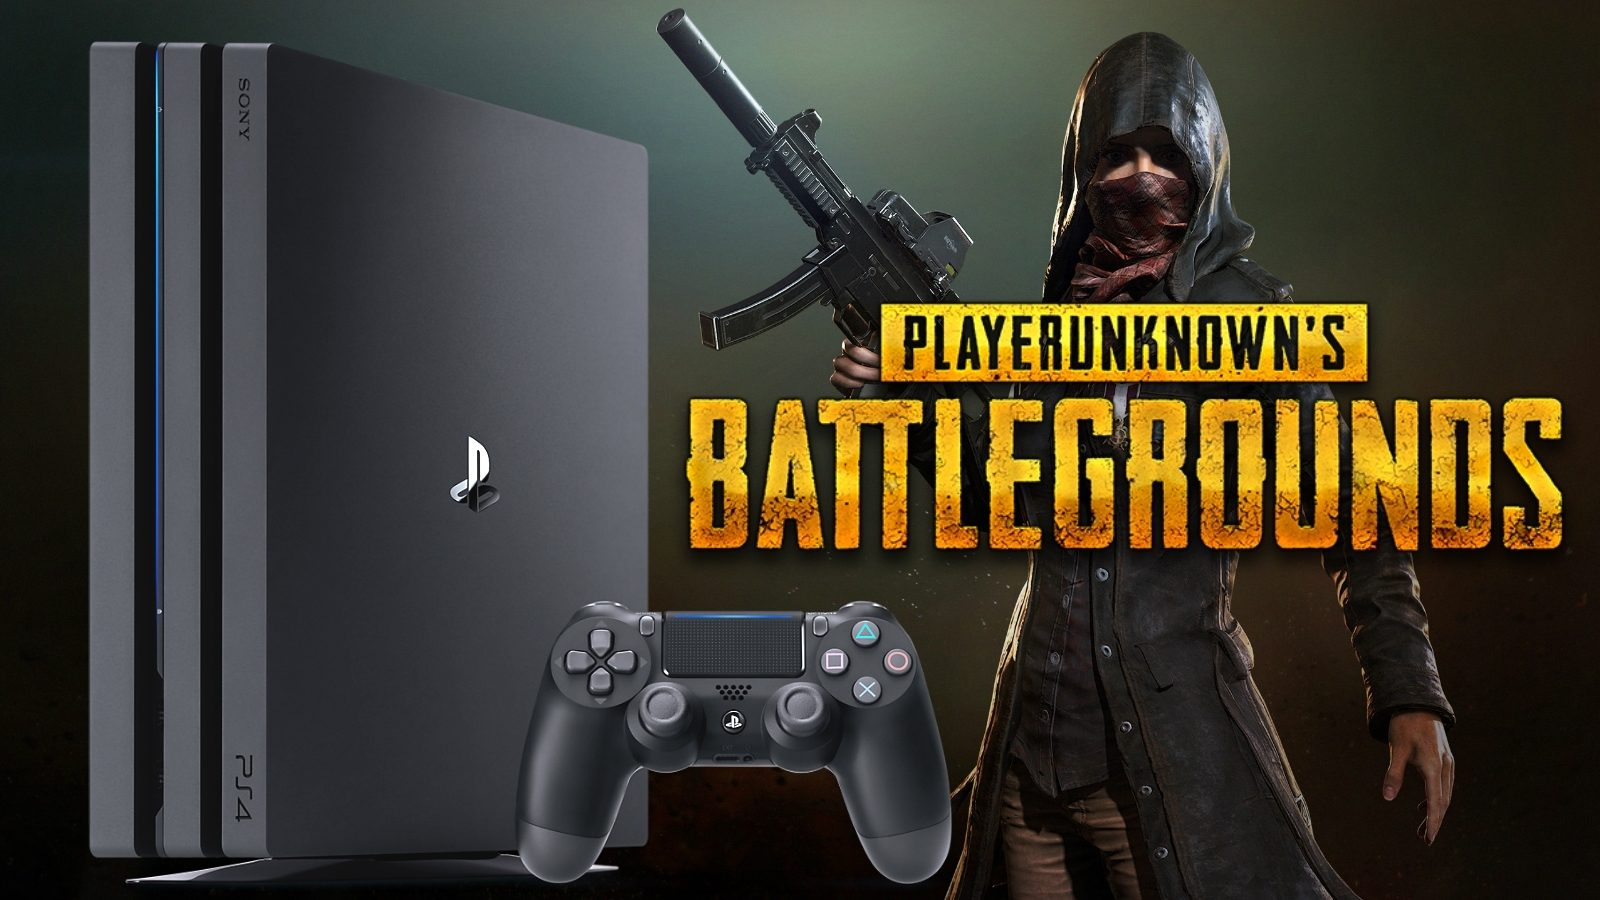 Pubg Ps4 Pro Hdr: PS4 Pro/XB1X PUBG Dynamic Resolution Update Inbound